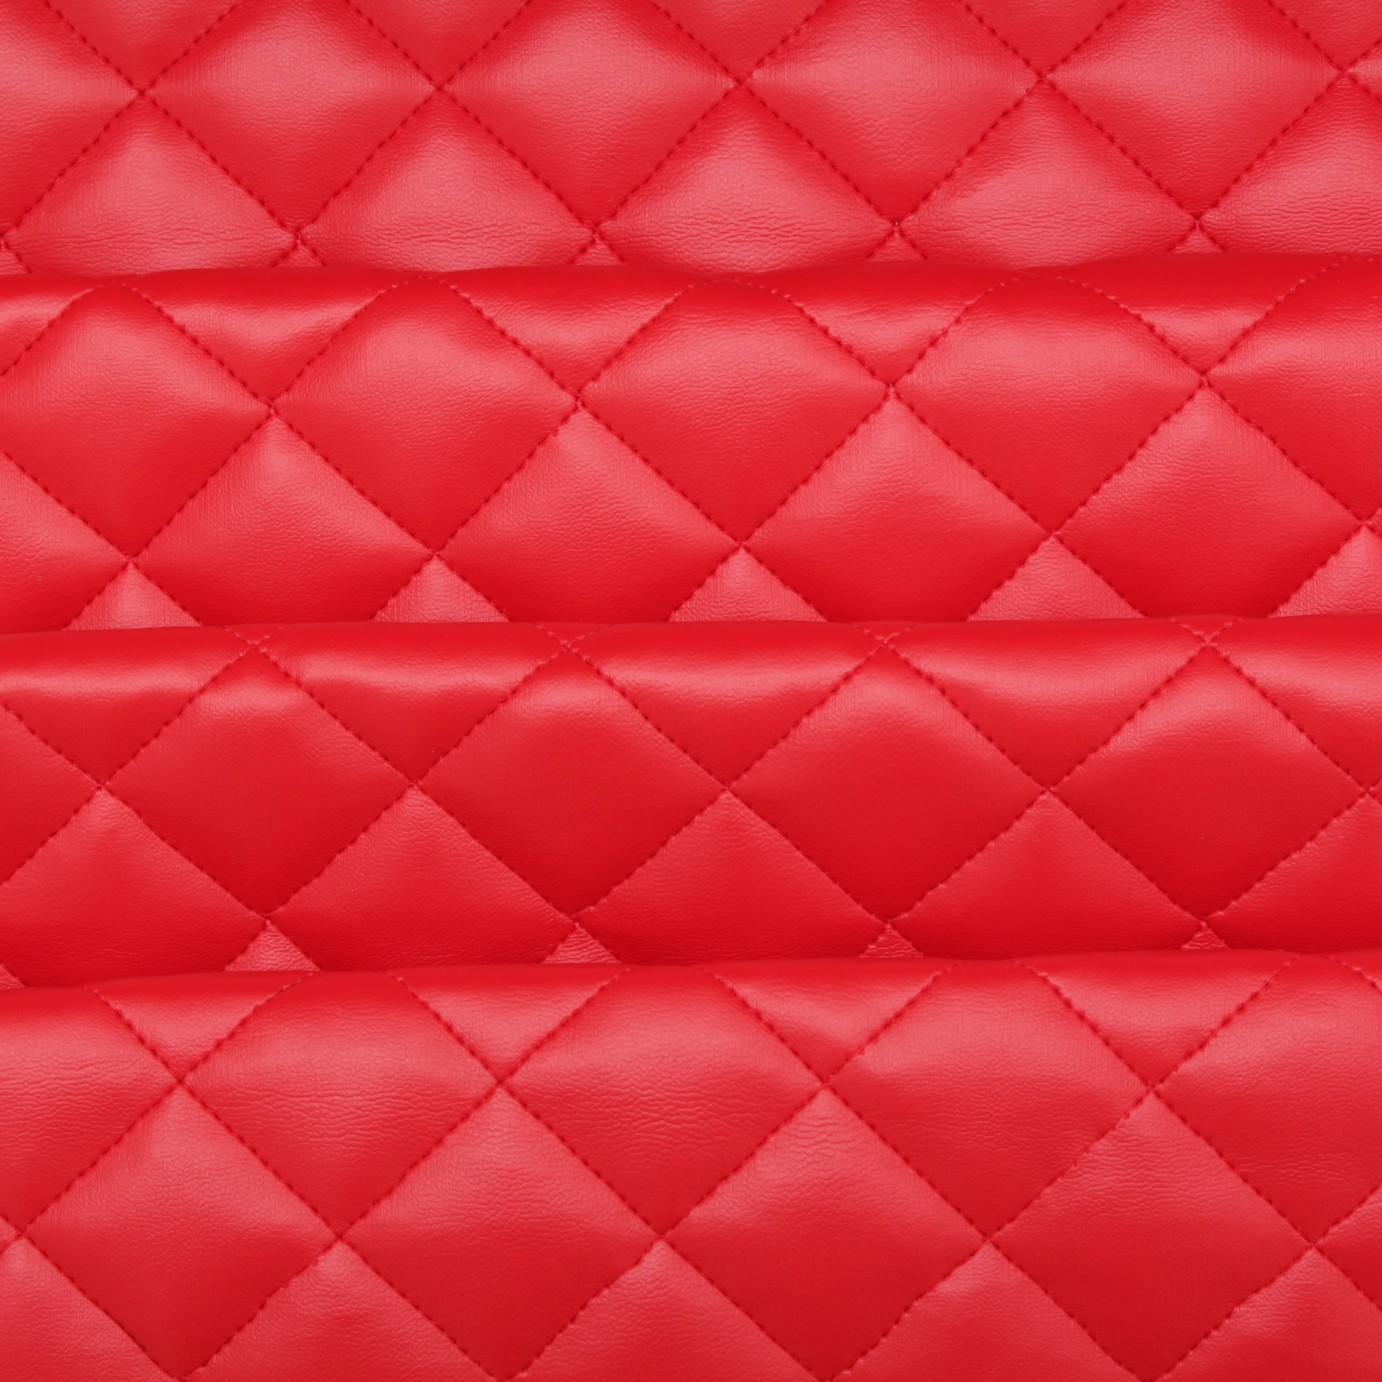 Leather cushion texture - Diamond Quilted Padded Faux Leather Fabric Red I Want